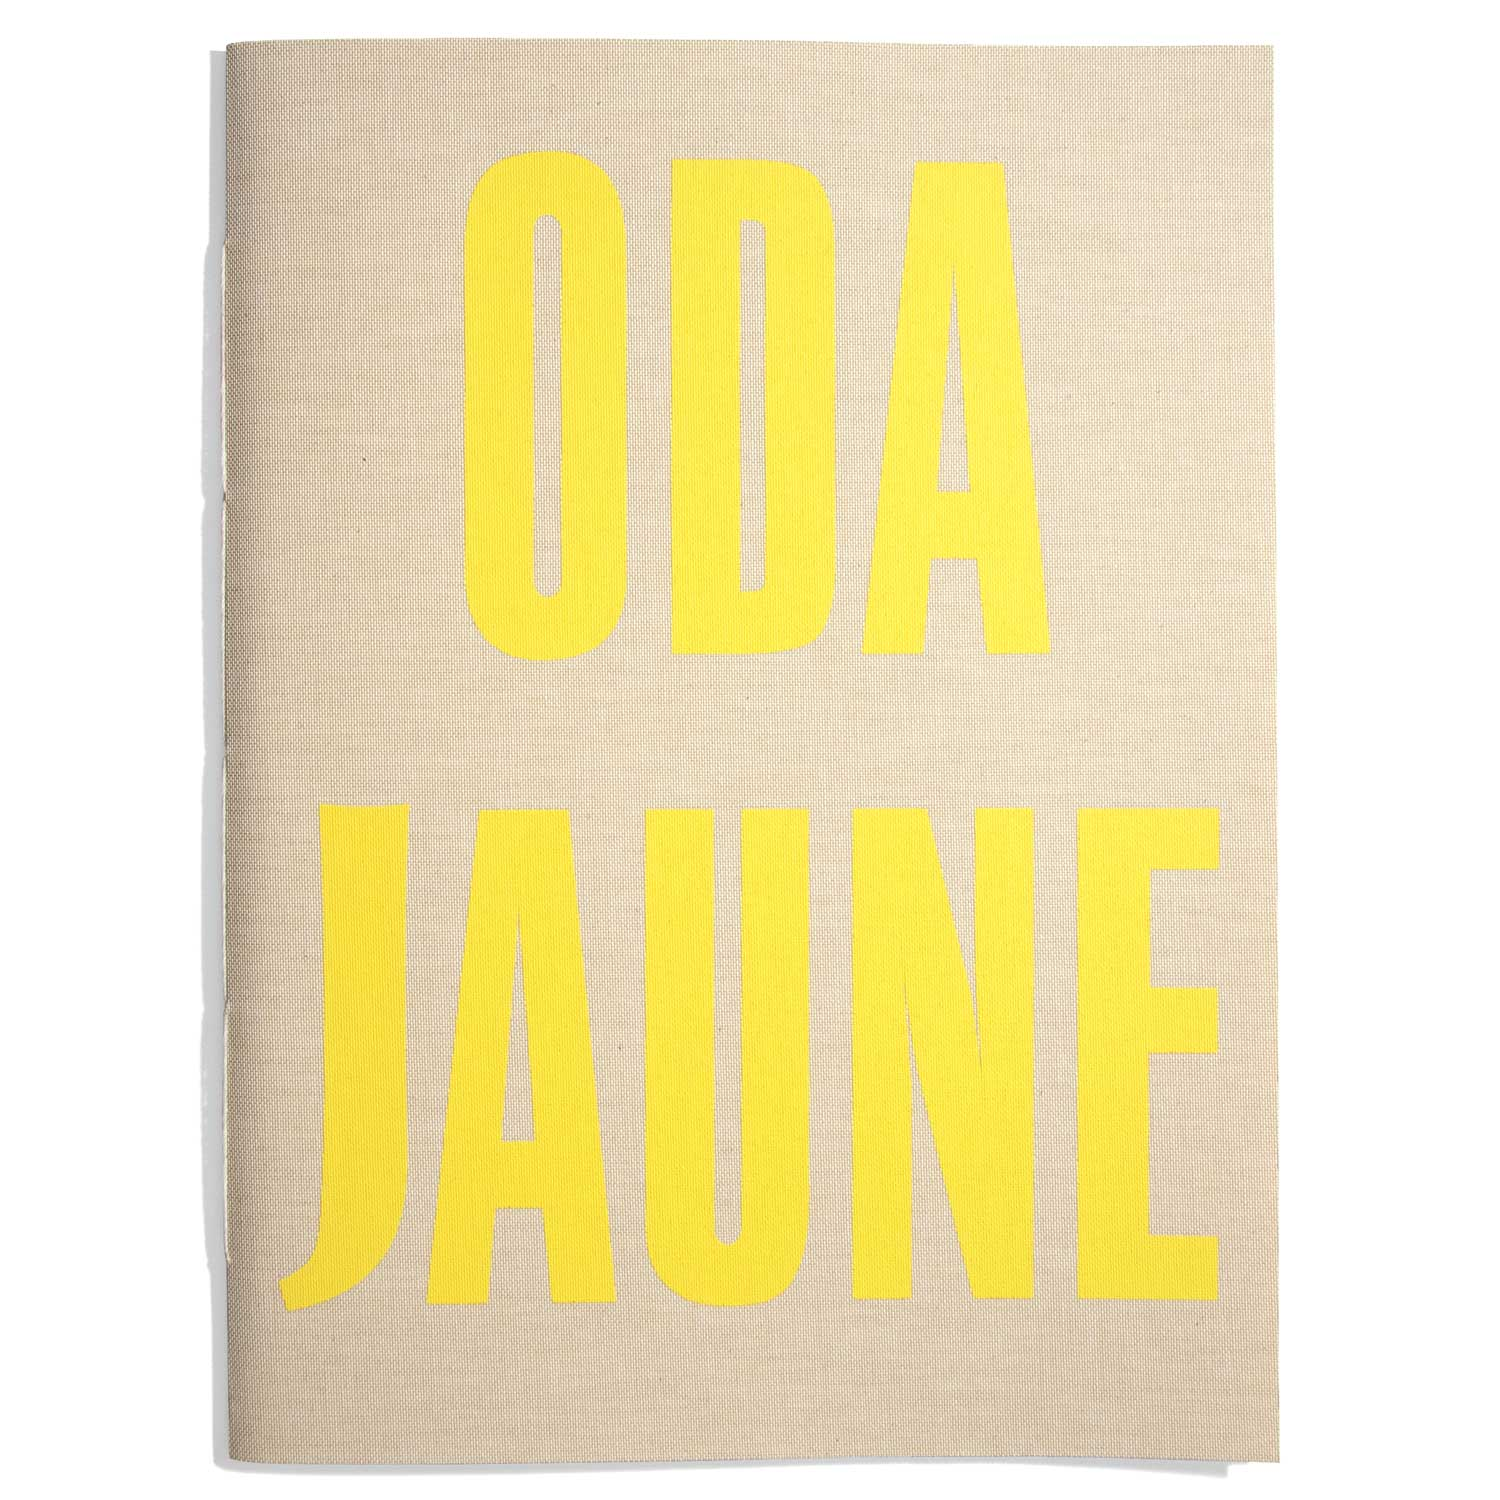 Sculptures - Oda Jaune